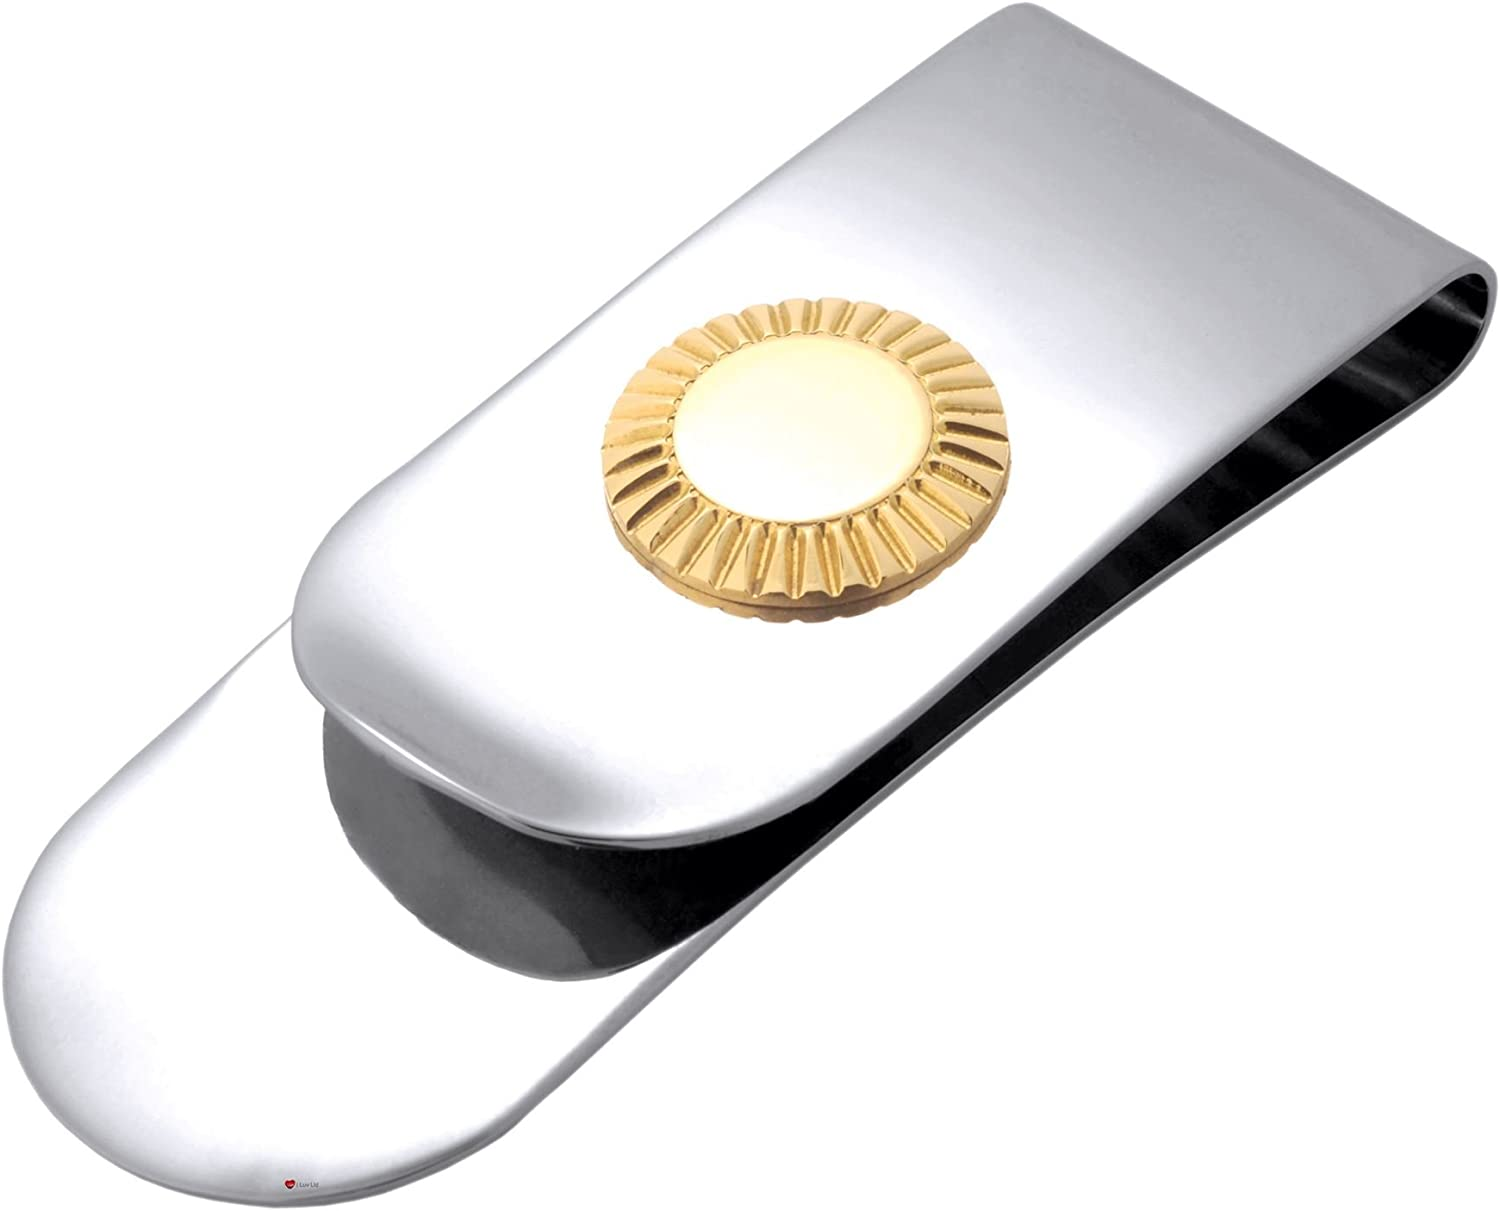 I LUV LTD Money Clip Stainless Steel and Gold Plate Gents - Luxury Presentation Box